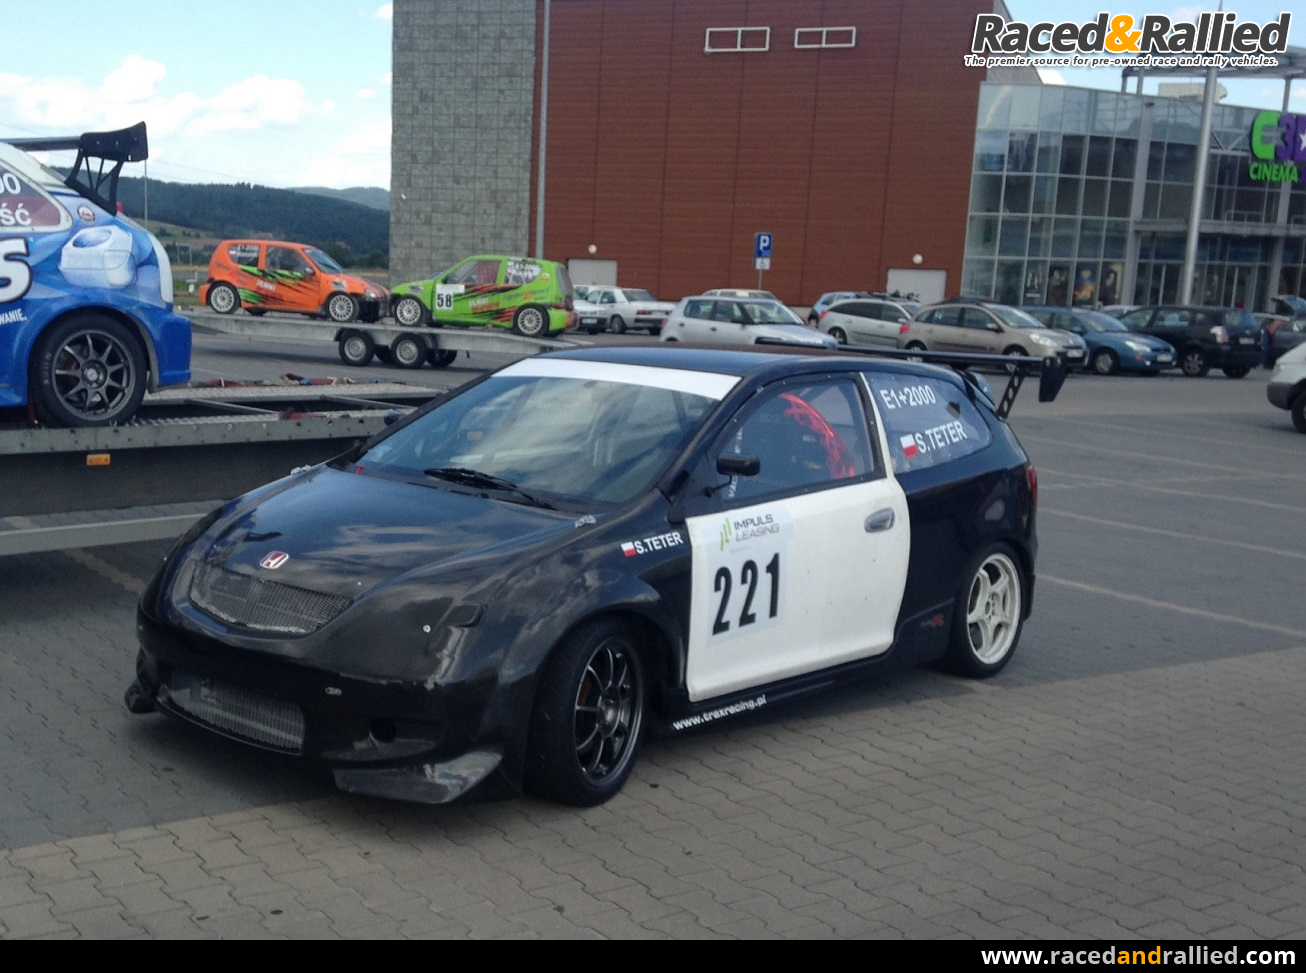 Honda Civic E1-2000 Hillclimb | Race Cars for sale at Raced & Rallied | rally cars for sale ...